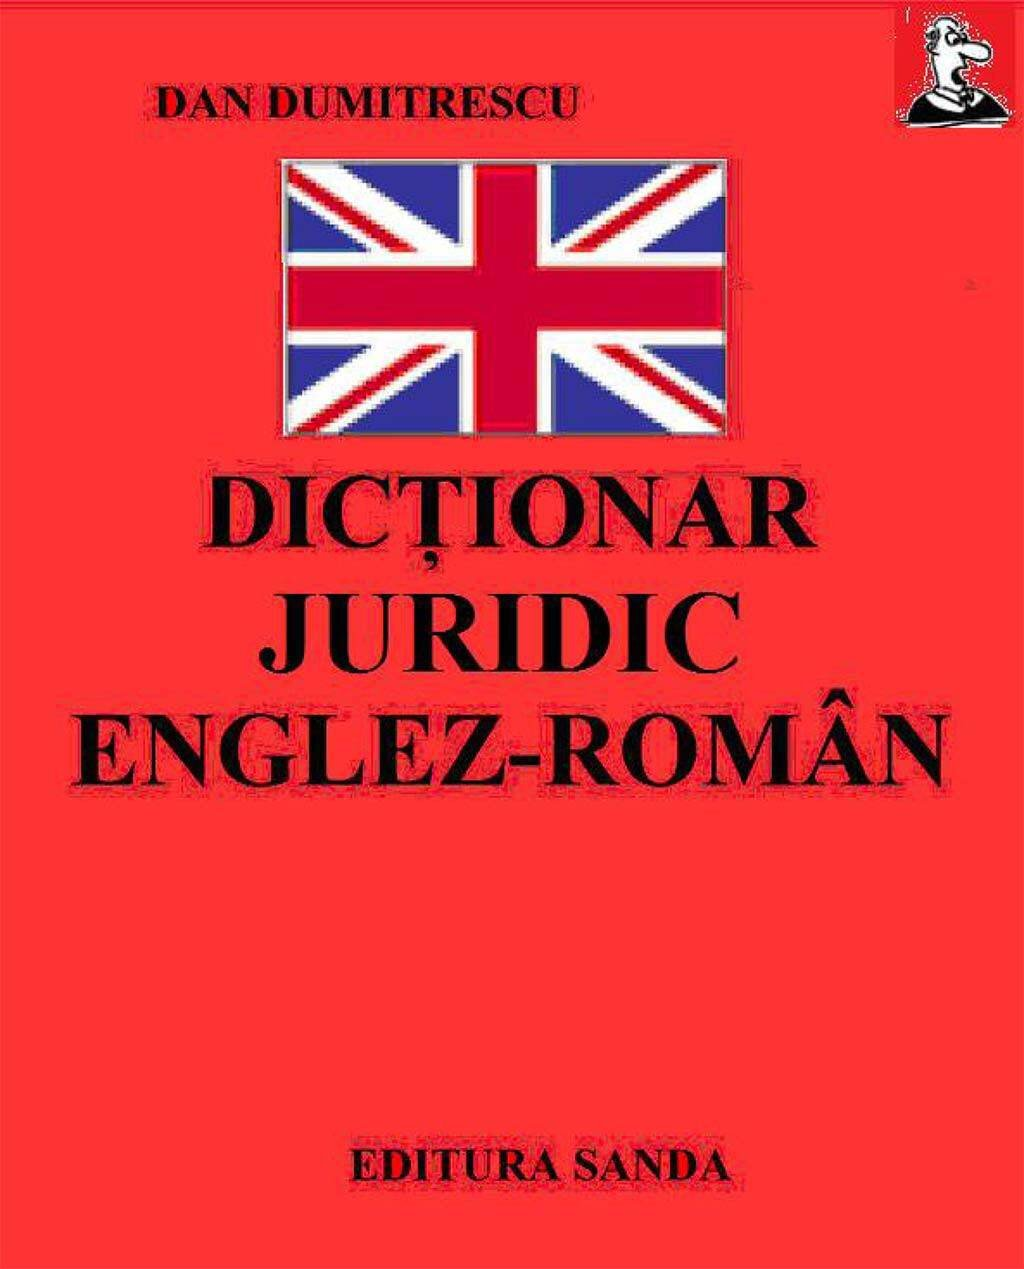 Dictionar juridic Englez-Roman (eBook)